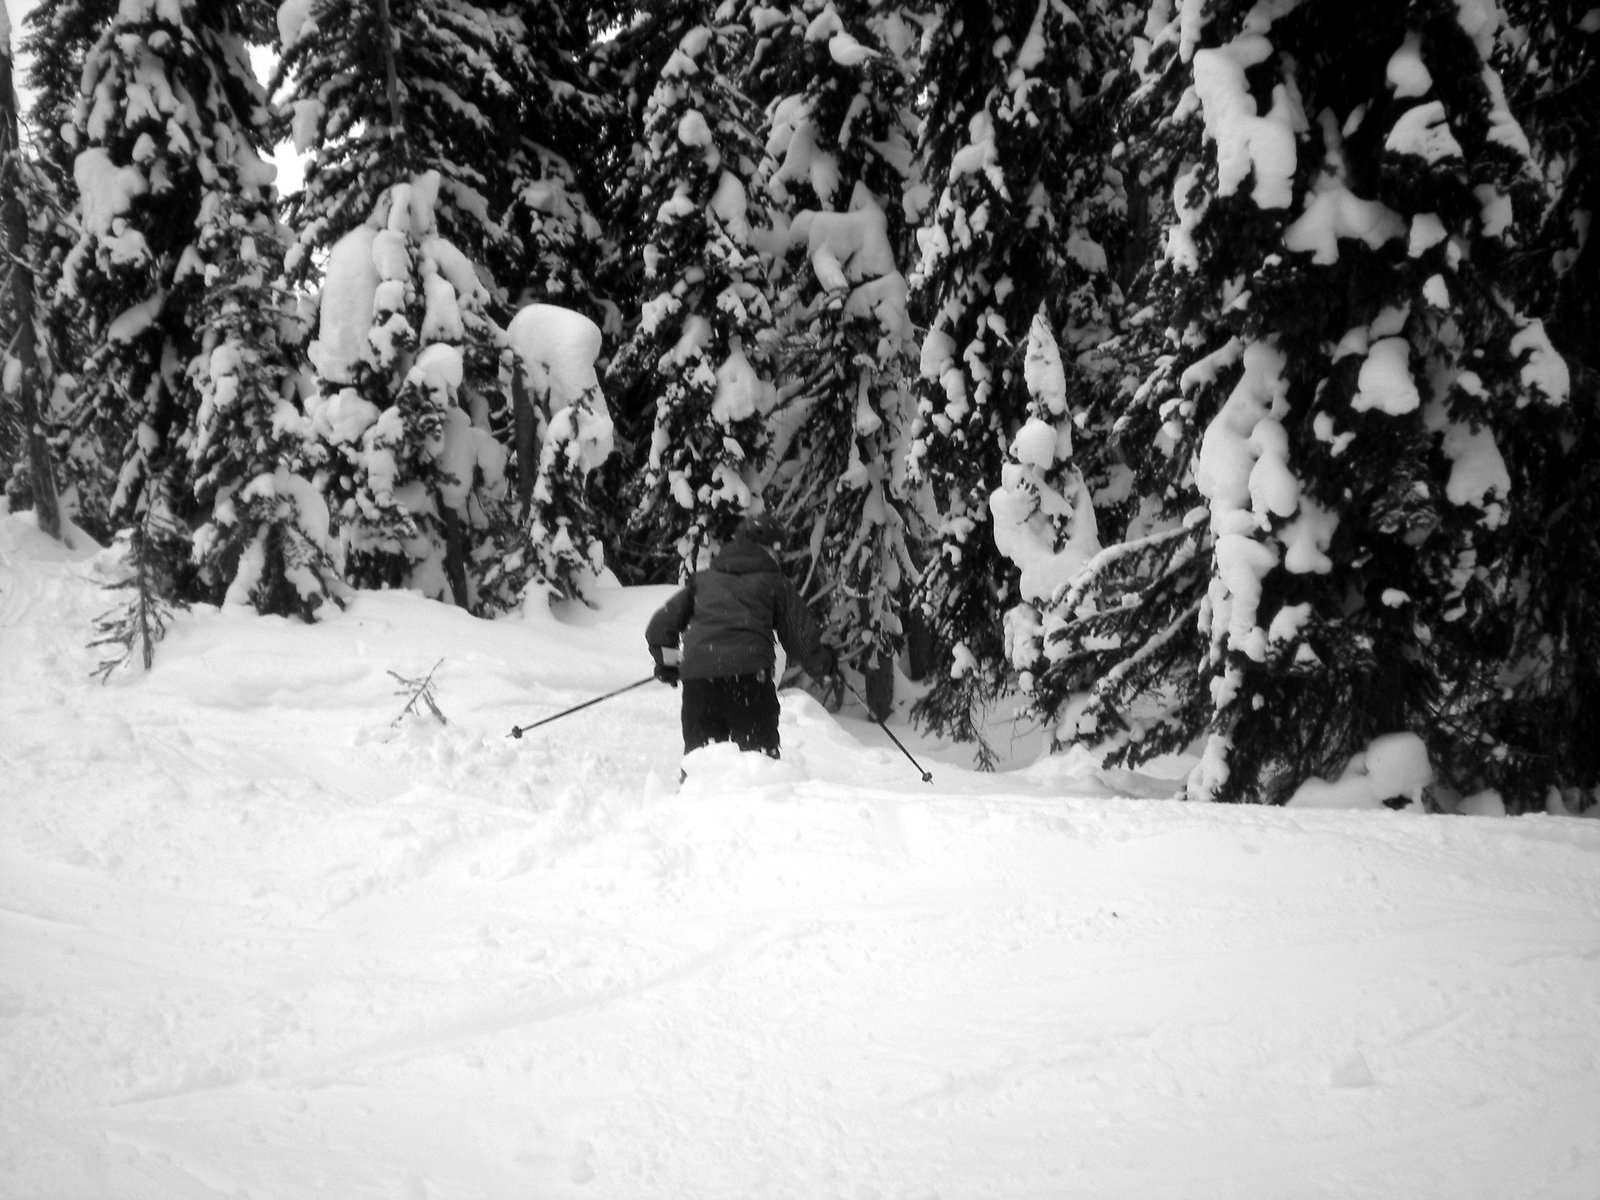 Going into Glades